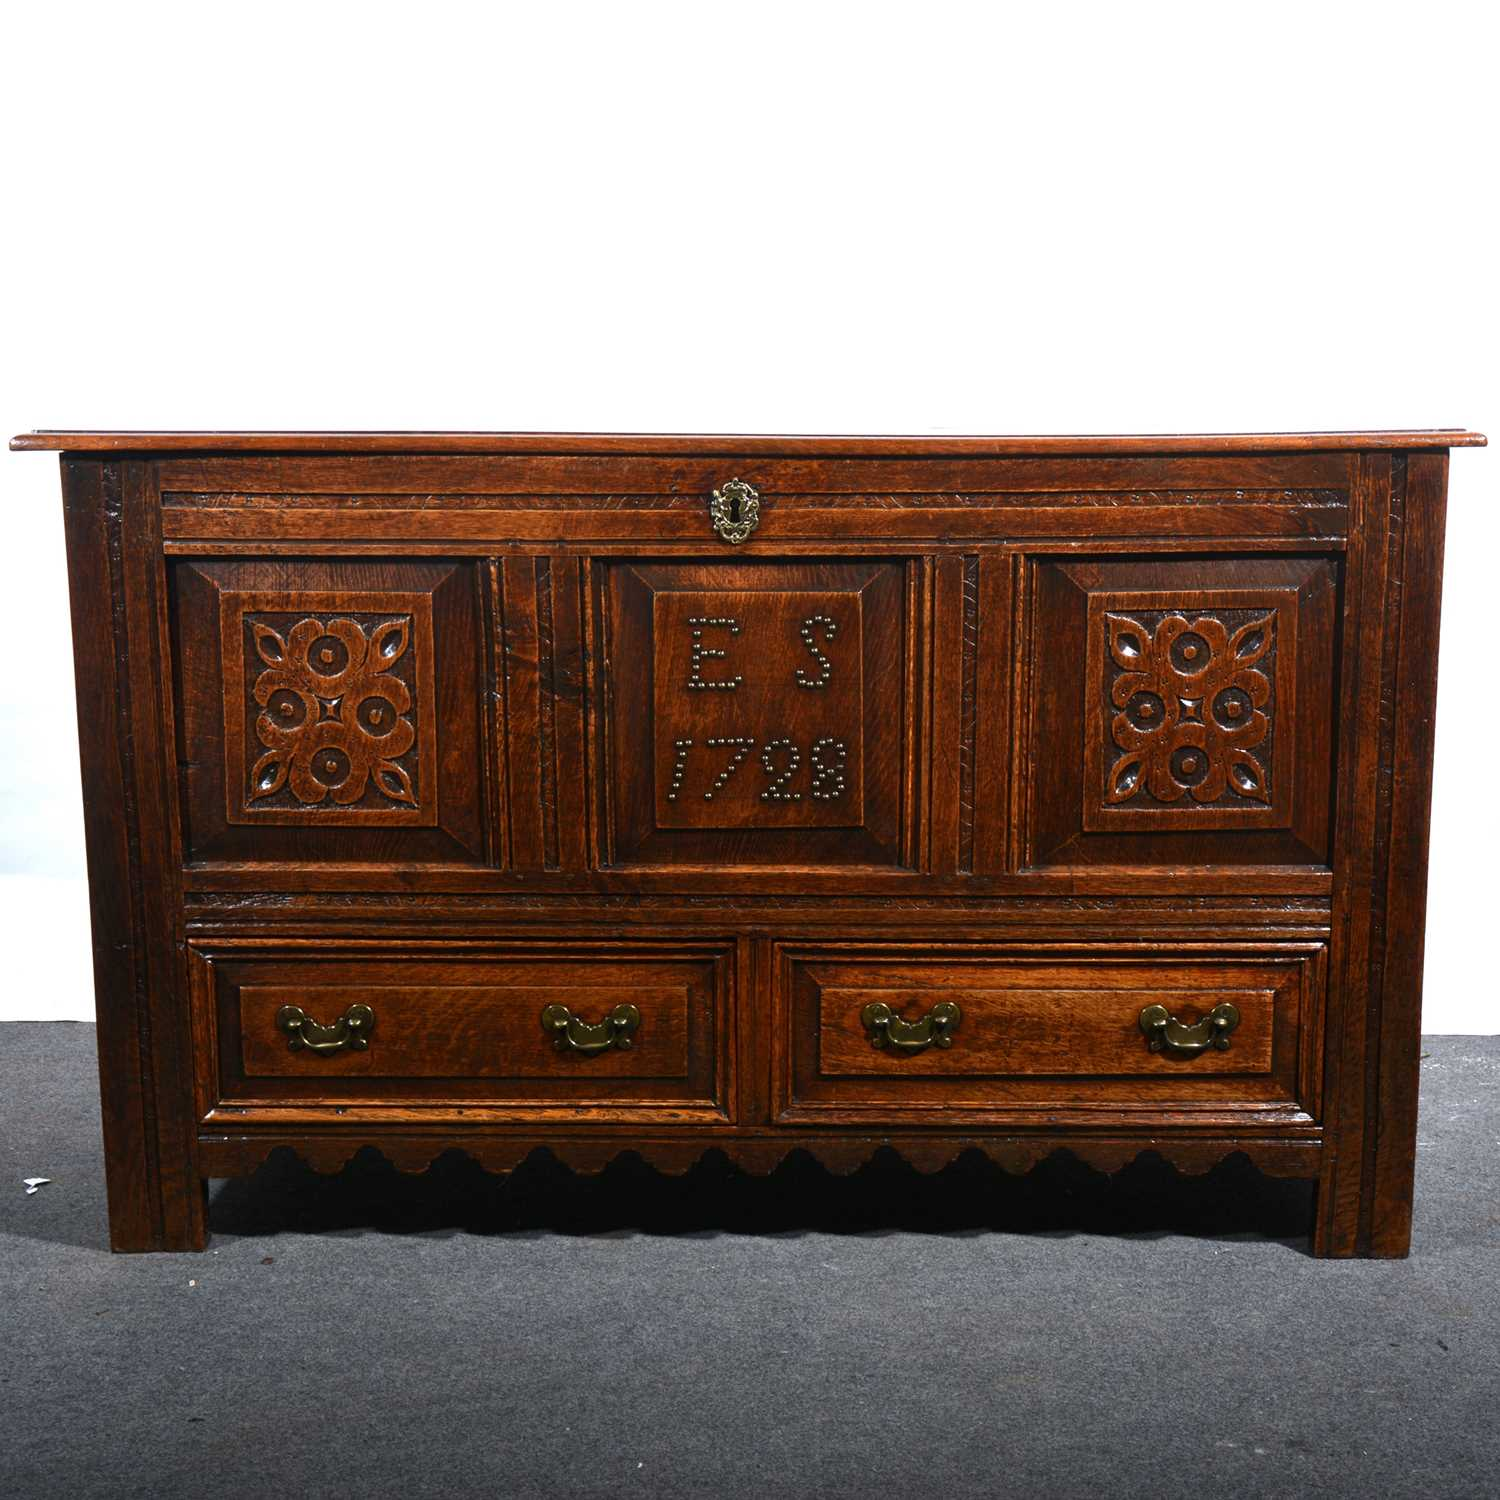 Lot 5 - A joined oak mule chest, dated 1728.